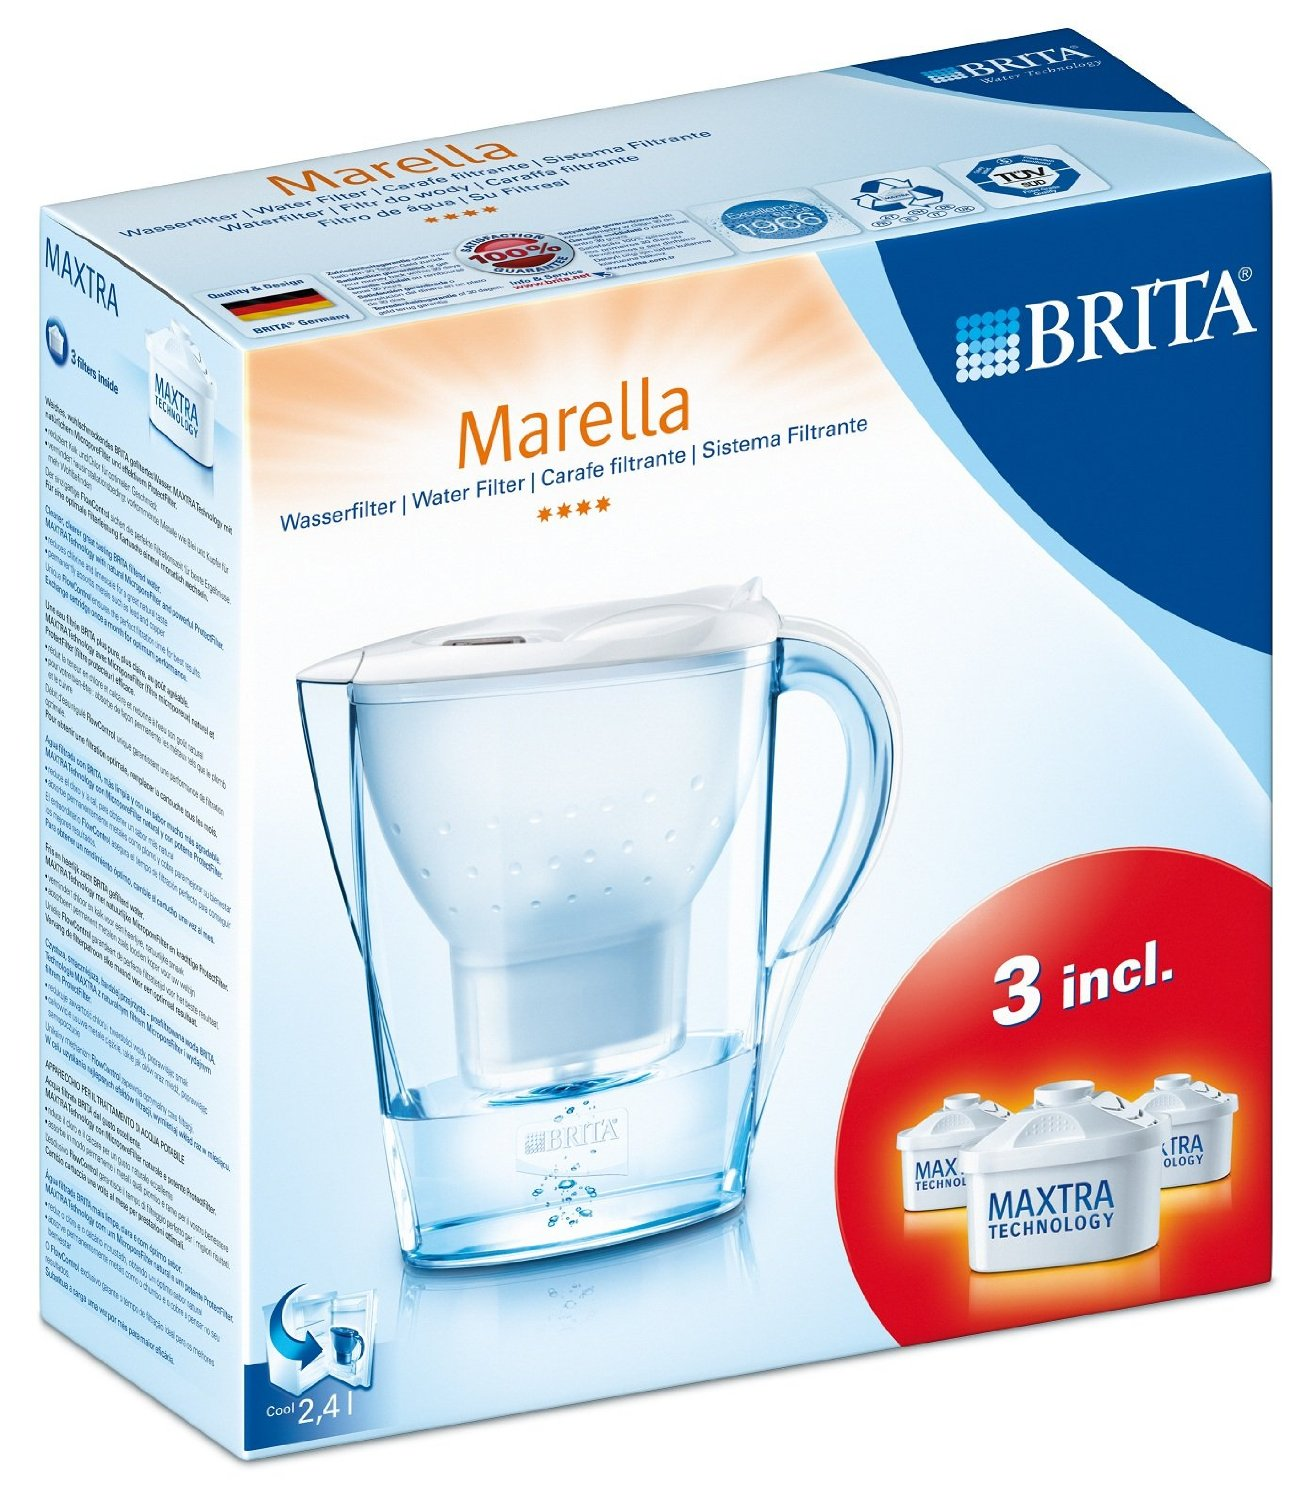 cana filtranta apa brita marella cool cu 3 filtre brita maxtra. Black Bedroom Furniture Sets. Home Design Ideas